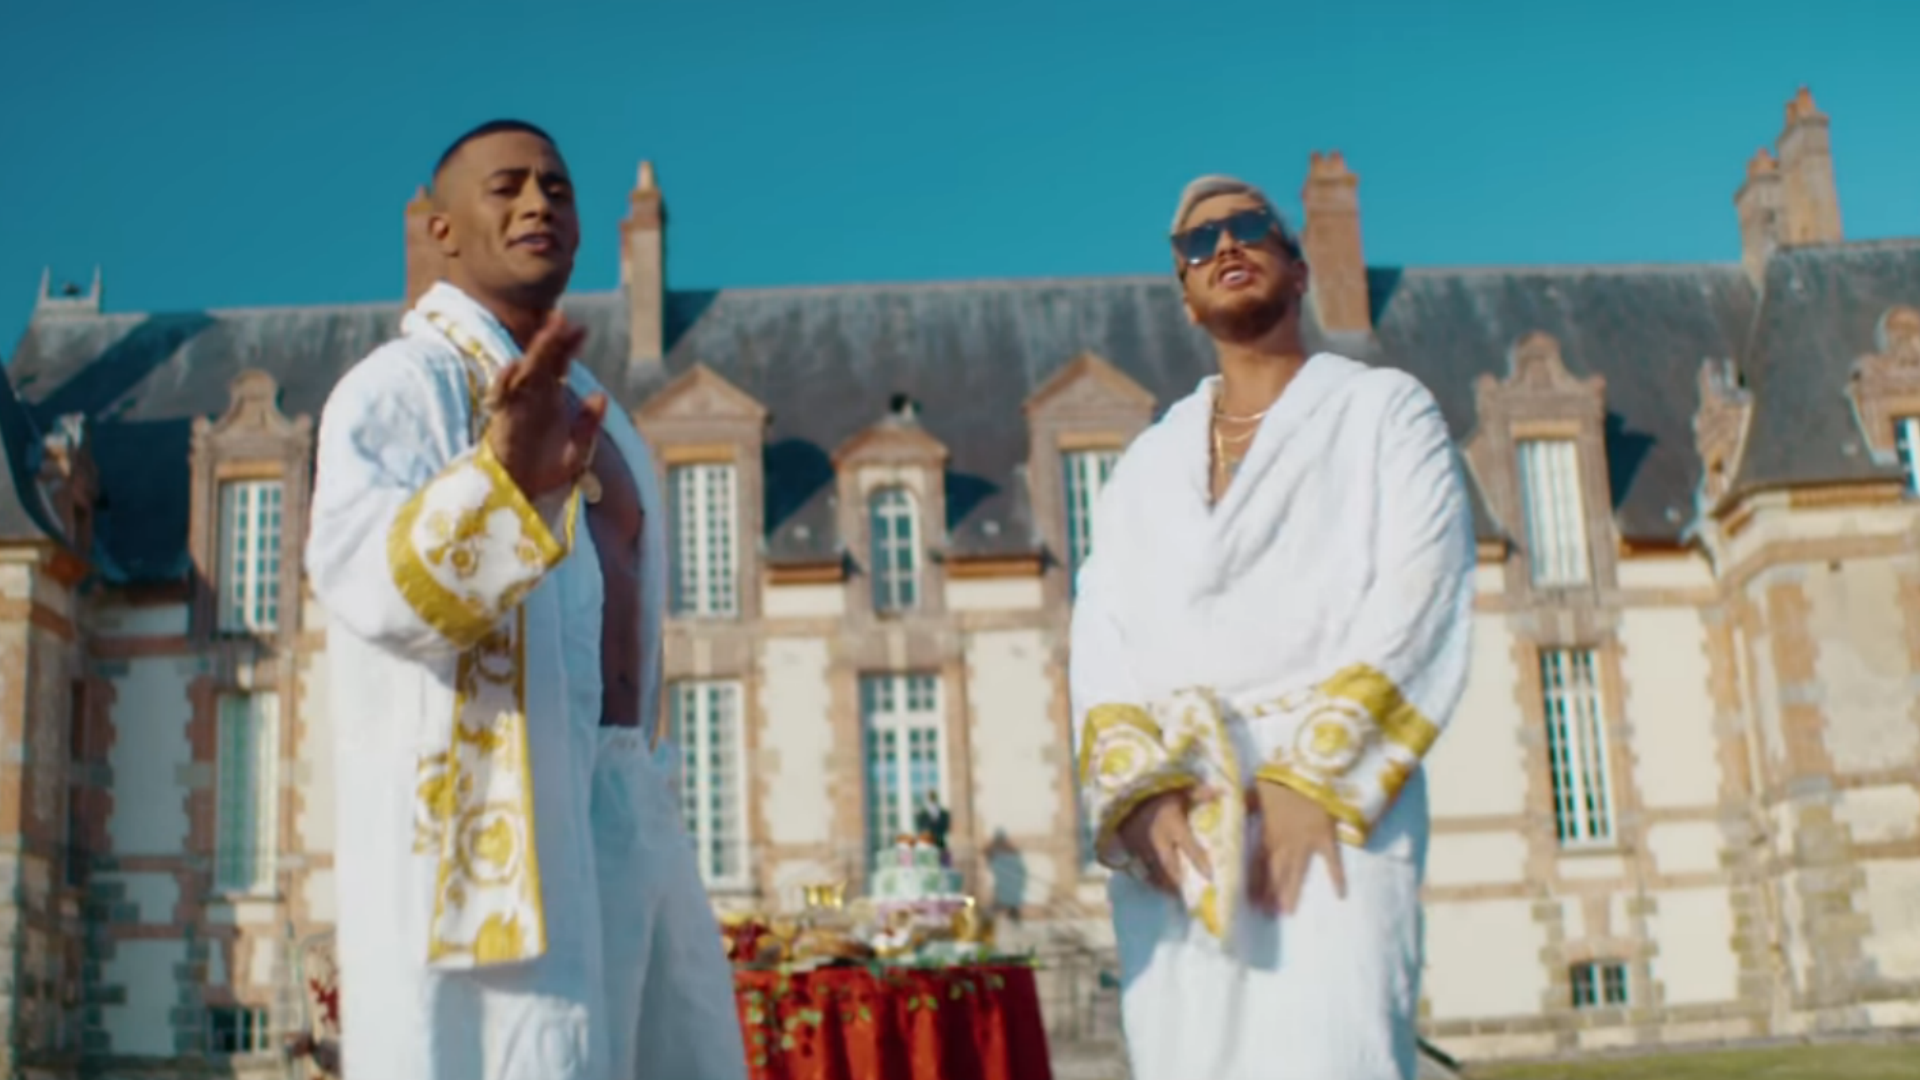 Mohamed Ramadan And Saad Lamjarred From Rags To Riches In New Music Video Ensay Ramadan Song Ramadan New Music